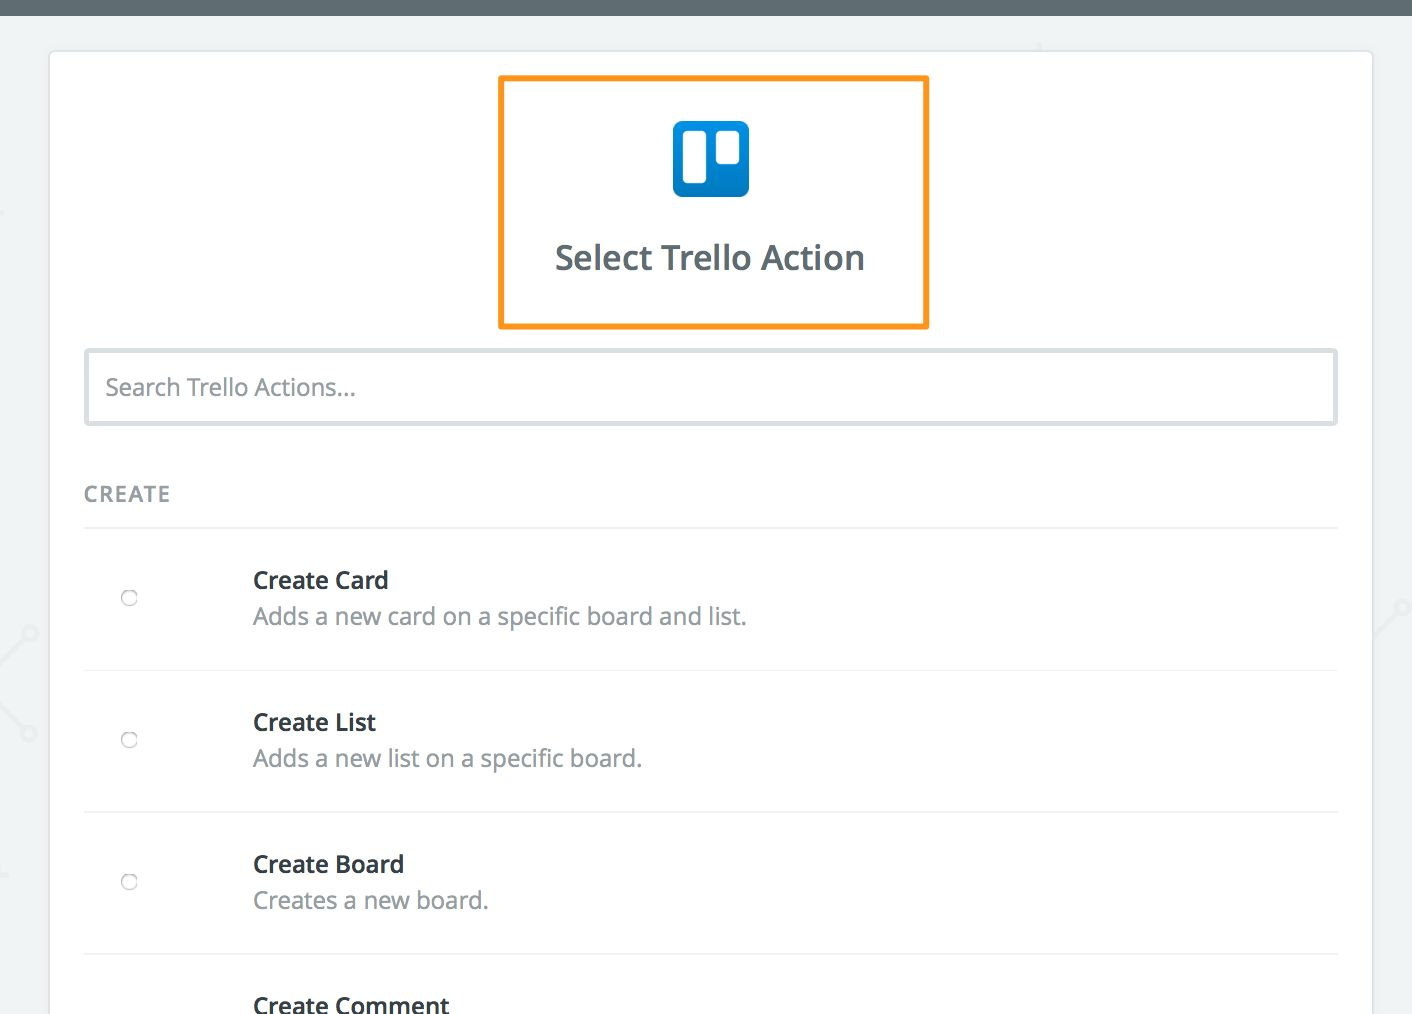 Pick Trello action